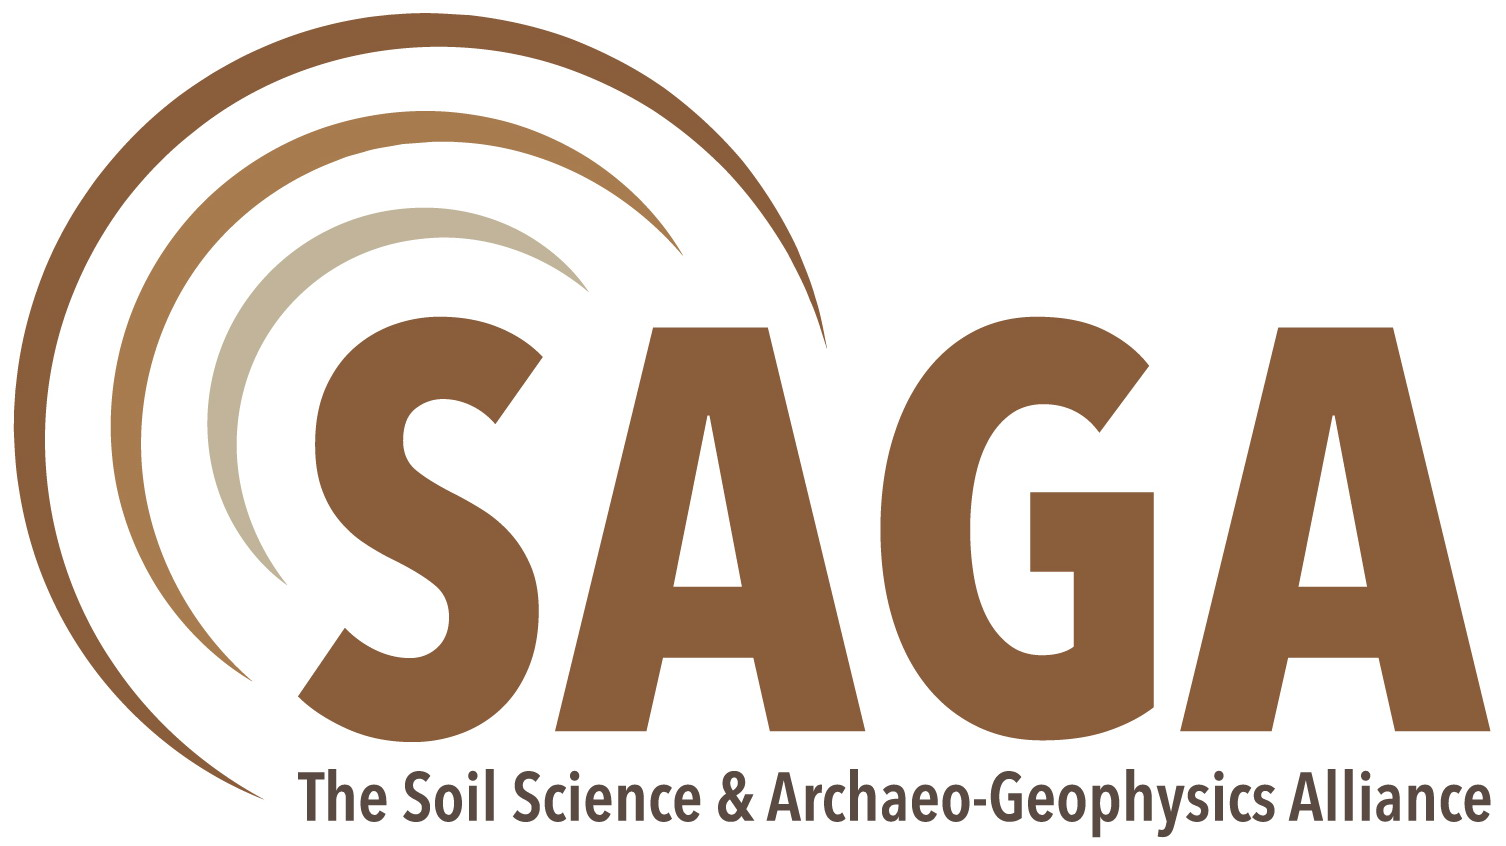 The Soil Science & Archaeo-Geophysics Alliance